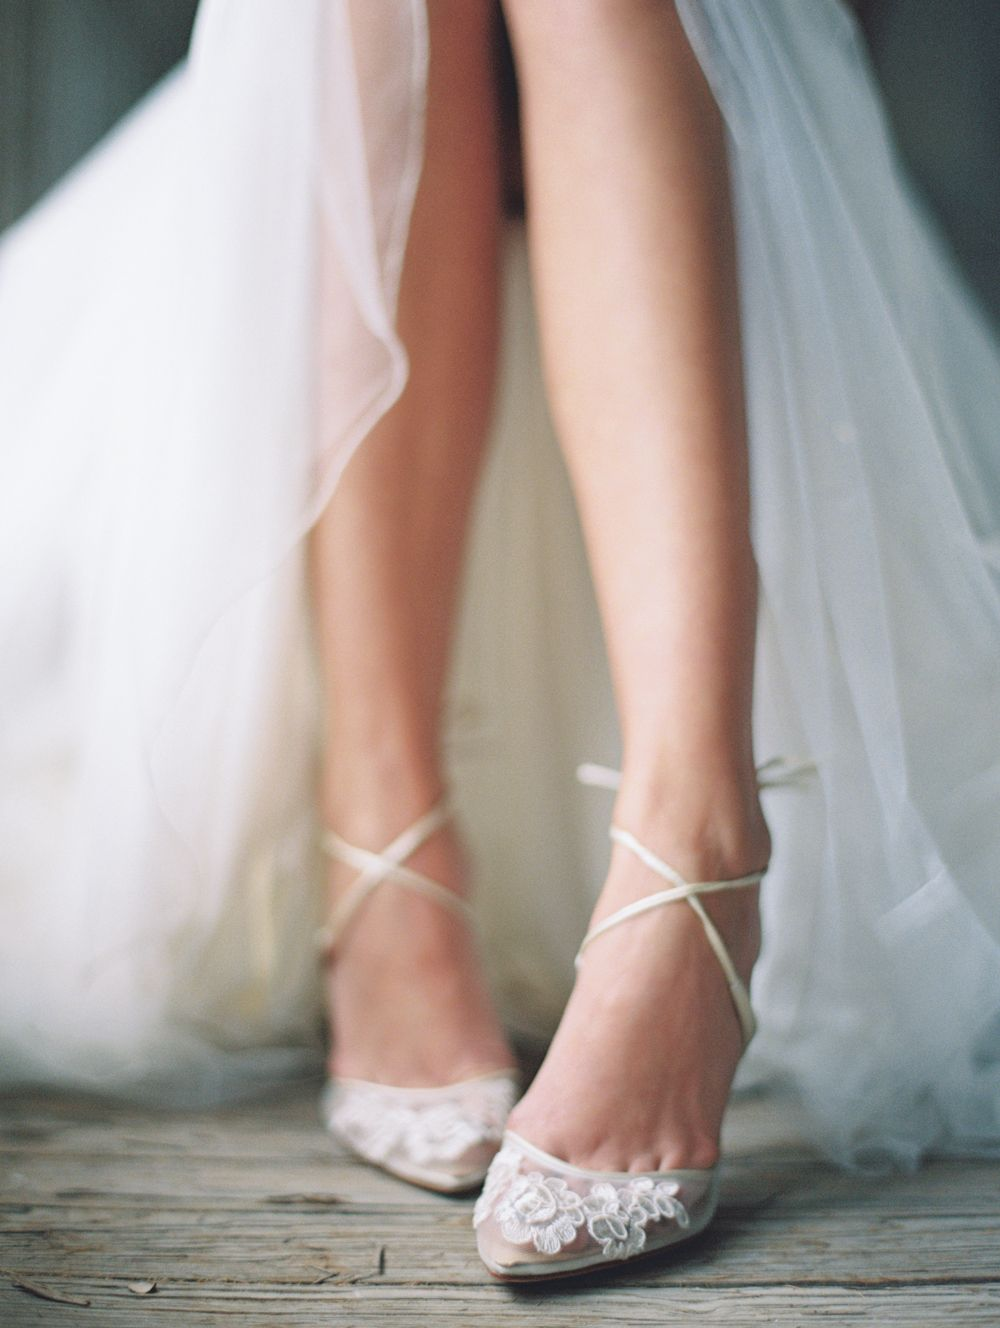 Anita Wedding Heel With Lace Embellishment And Cross Ankle Straps By Bella Belle Photographer Bethany Erin